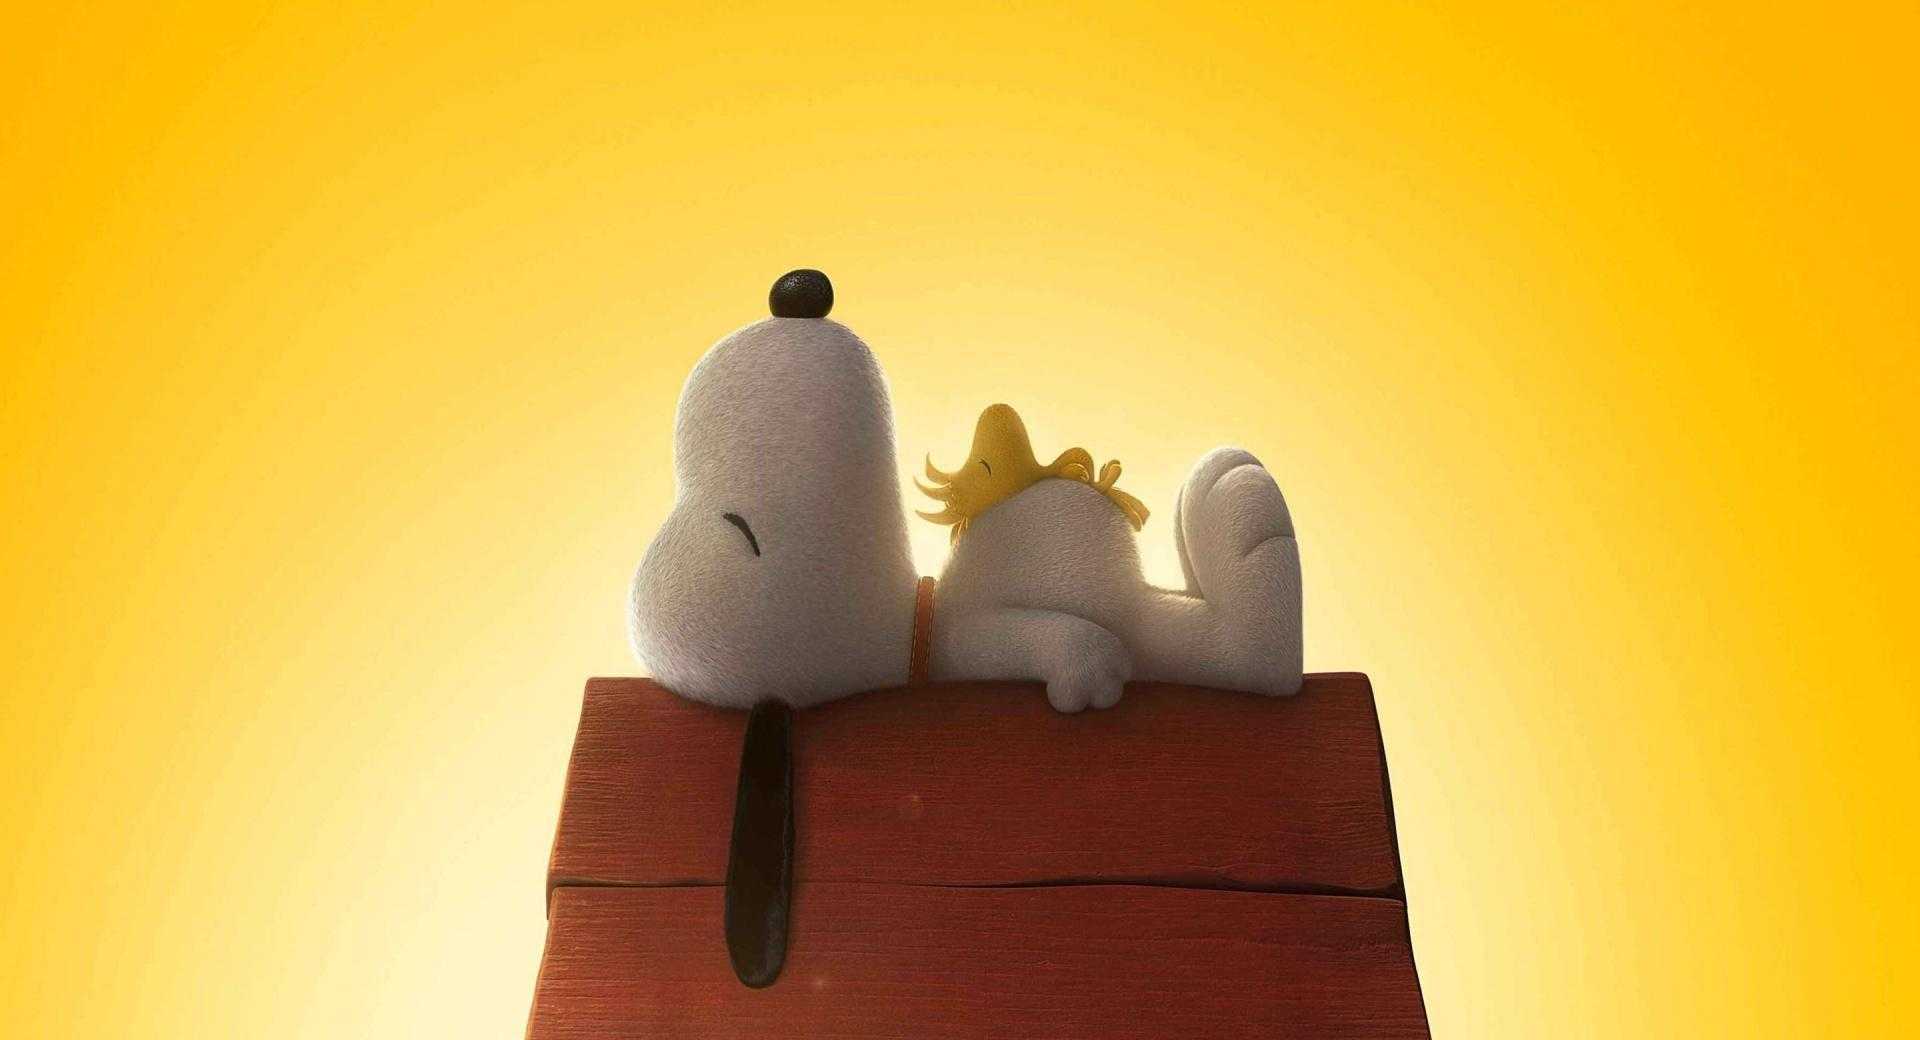 Peanuts 2015 Movie wallpapers HD quality